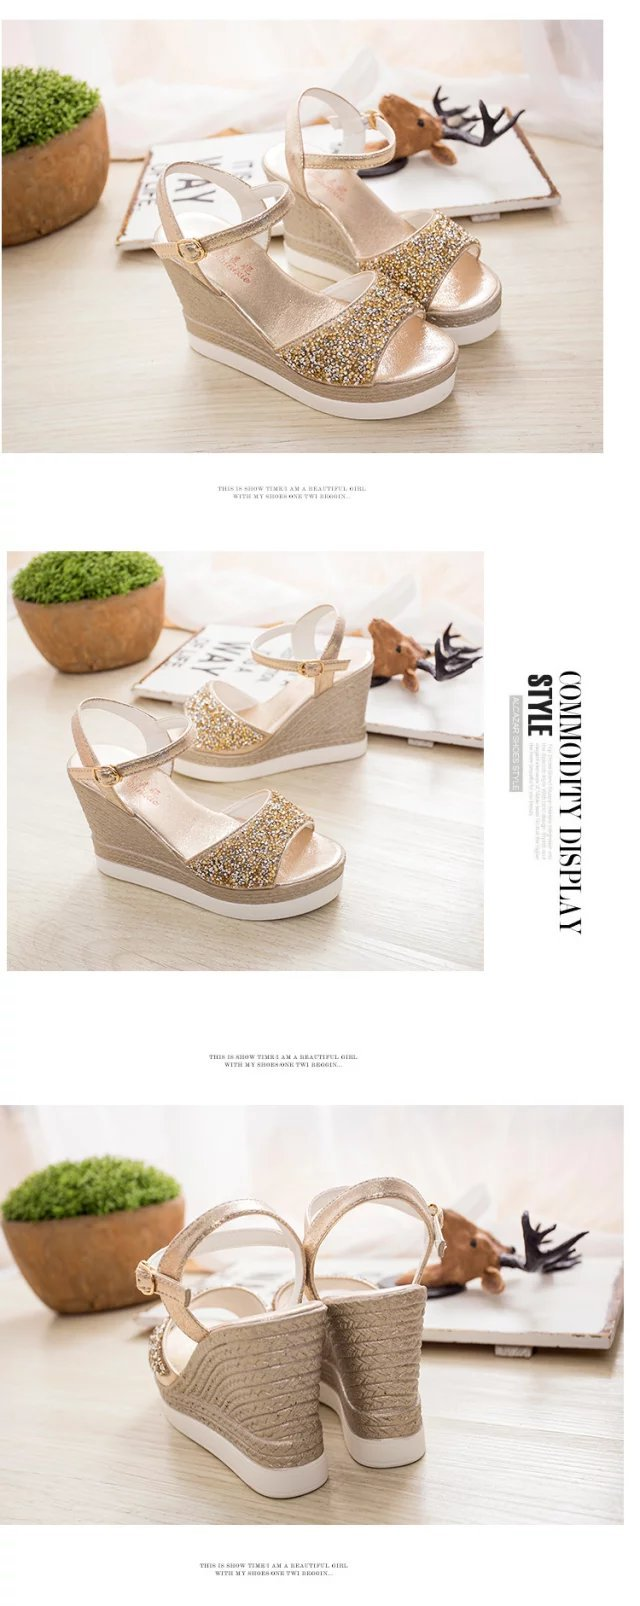 e251ade36da2 Rivets Handmade Summer Women Linen Close Toe Wedge Sandals Minimalist Mid  Heel Ladies Casual Hemp Shoes sandials mujer-in High Heels from Shoes on ...